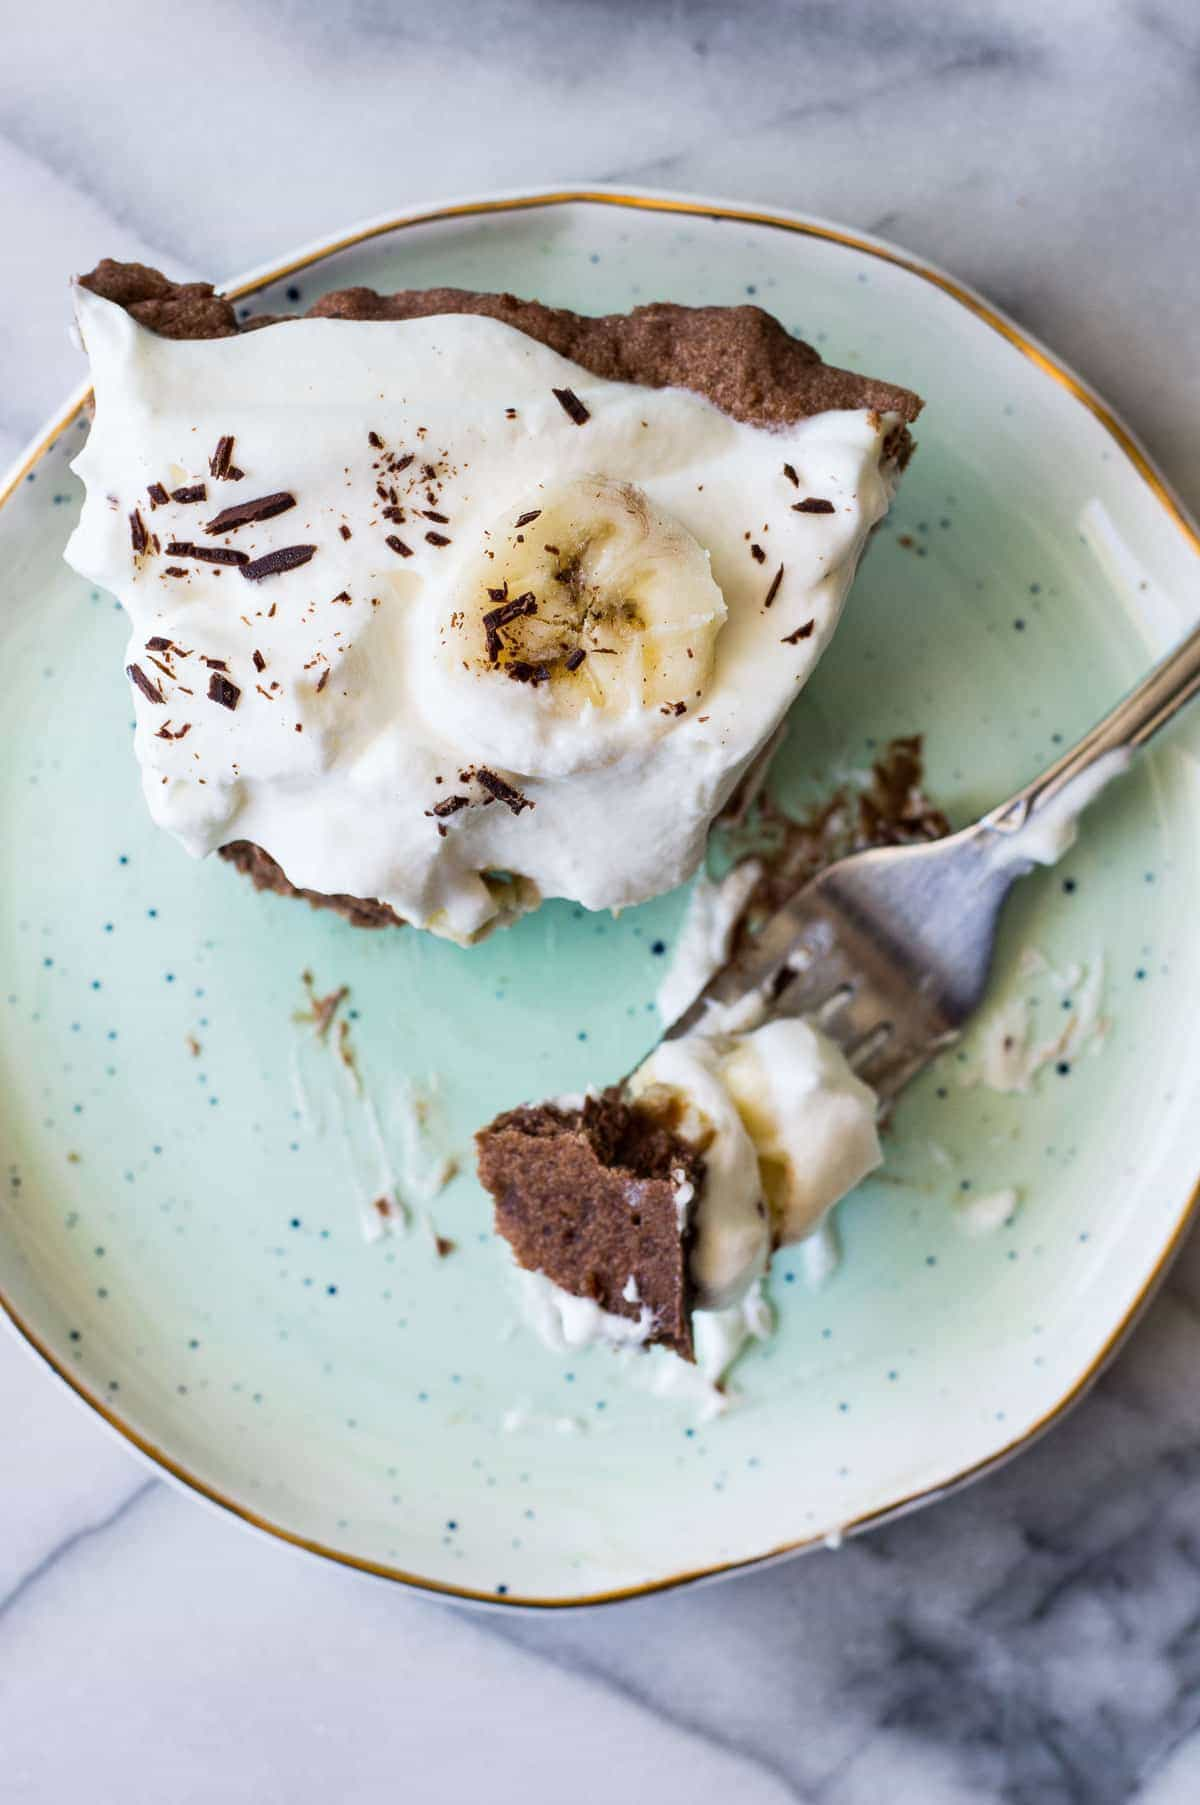 Chocolate Banana Cream Pie. Chocolate pie crust loaded up with layers of chocolate cream, bananas, and vanilla cream. All topped with a thick layer of whipped cream!